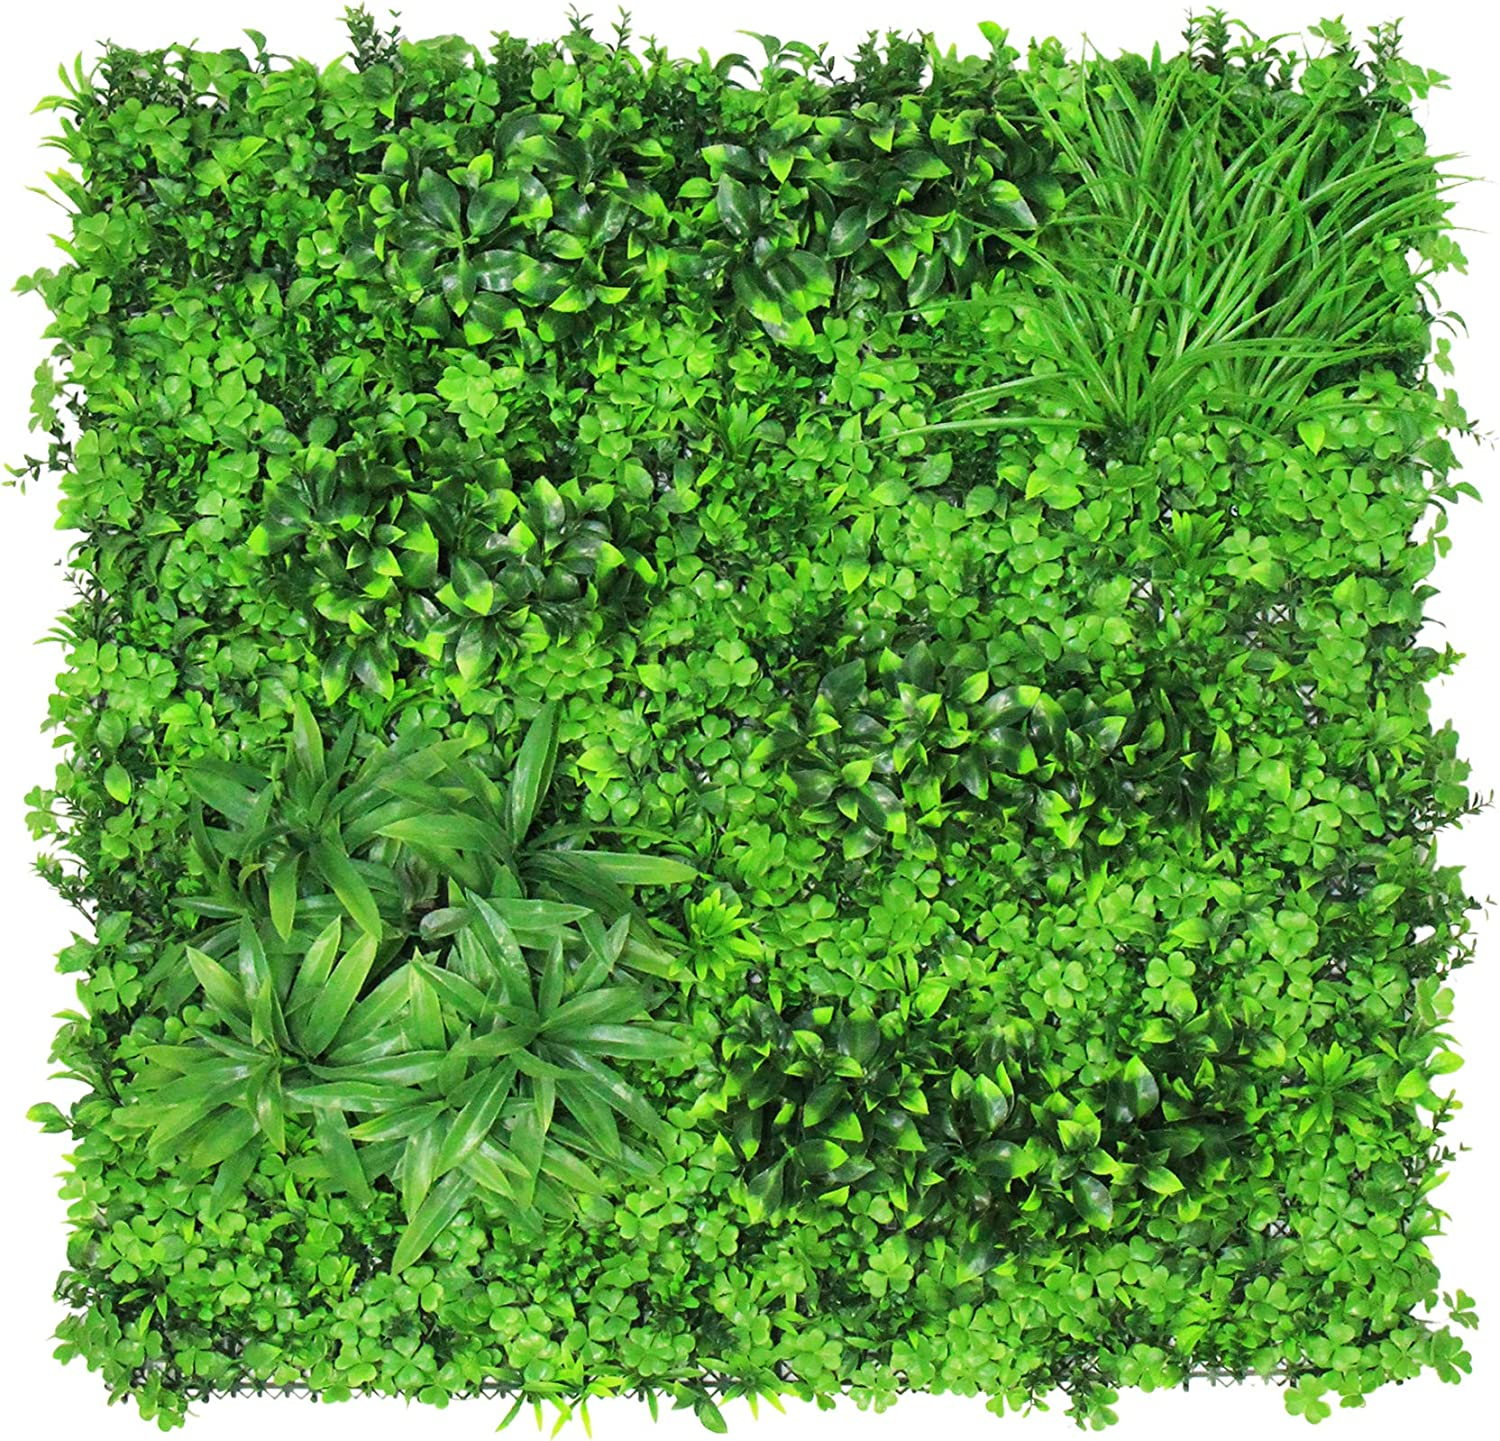 ULAND Max 51% OFF Artificial Greenery Hedegs Wall Faux Plant Fixed price for sale Ivy Backdrop